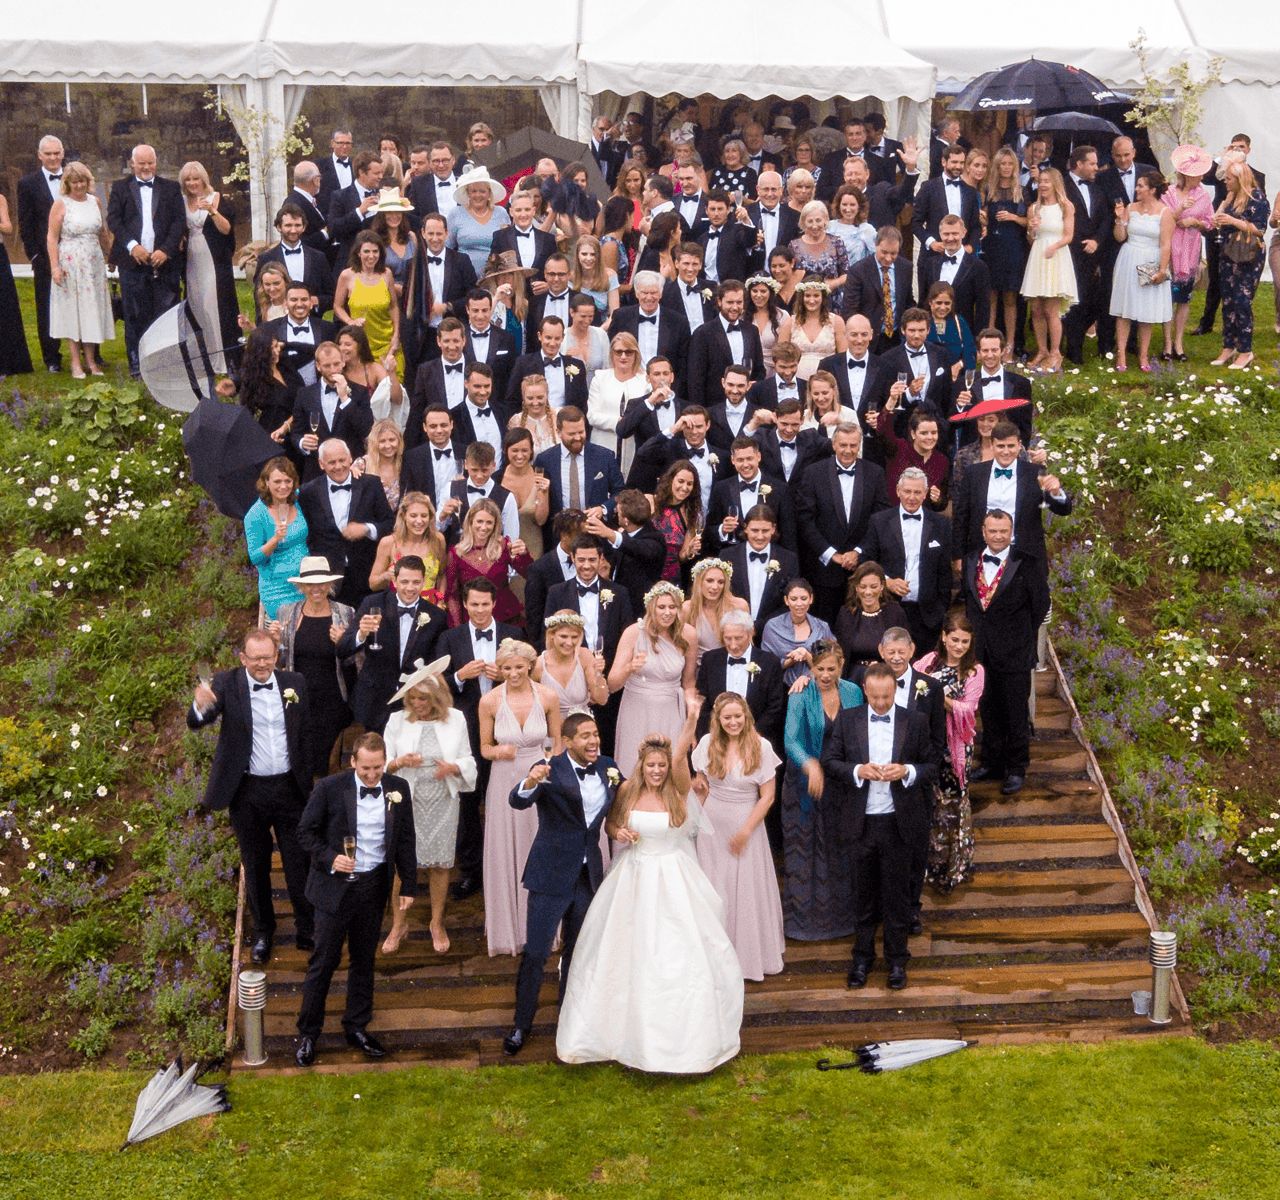 """Mavic Pro"" aerial drone photo of a wedding party in Compton Martin, Bristol"